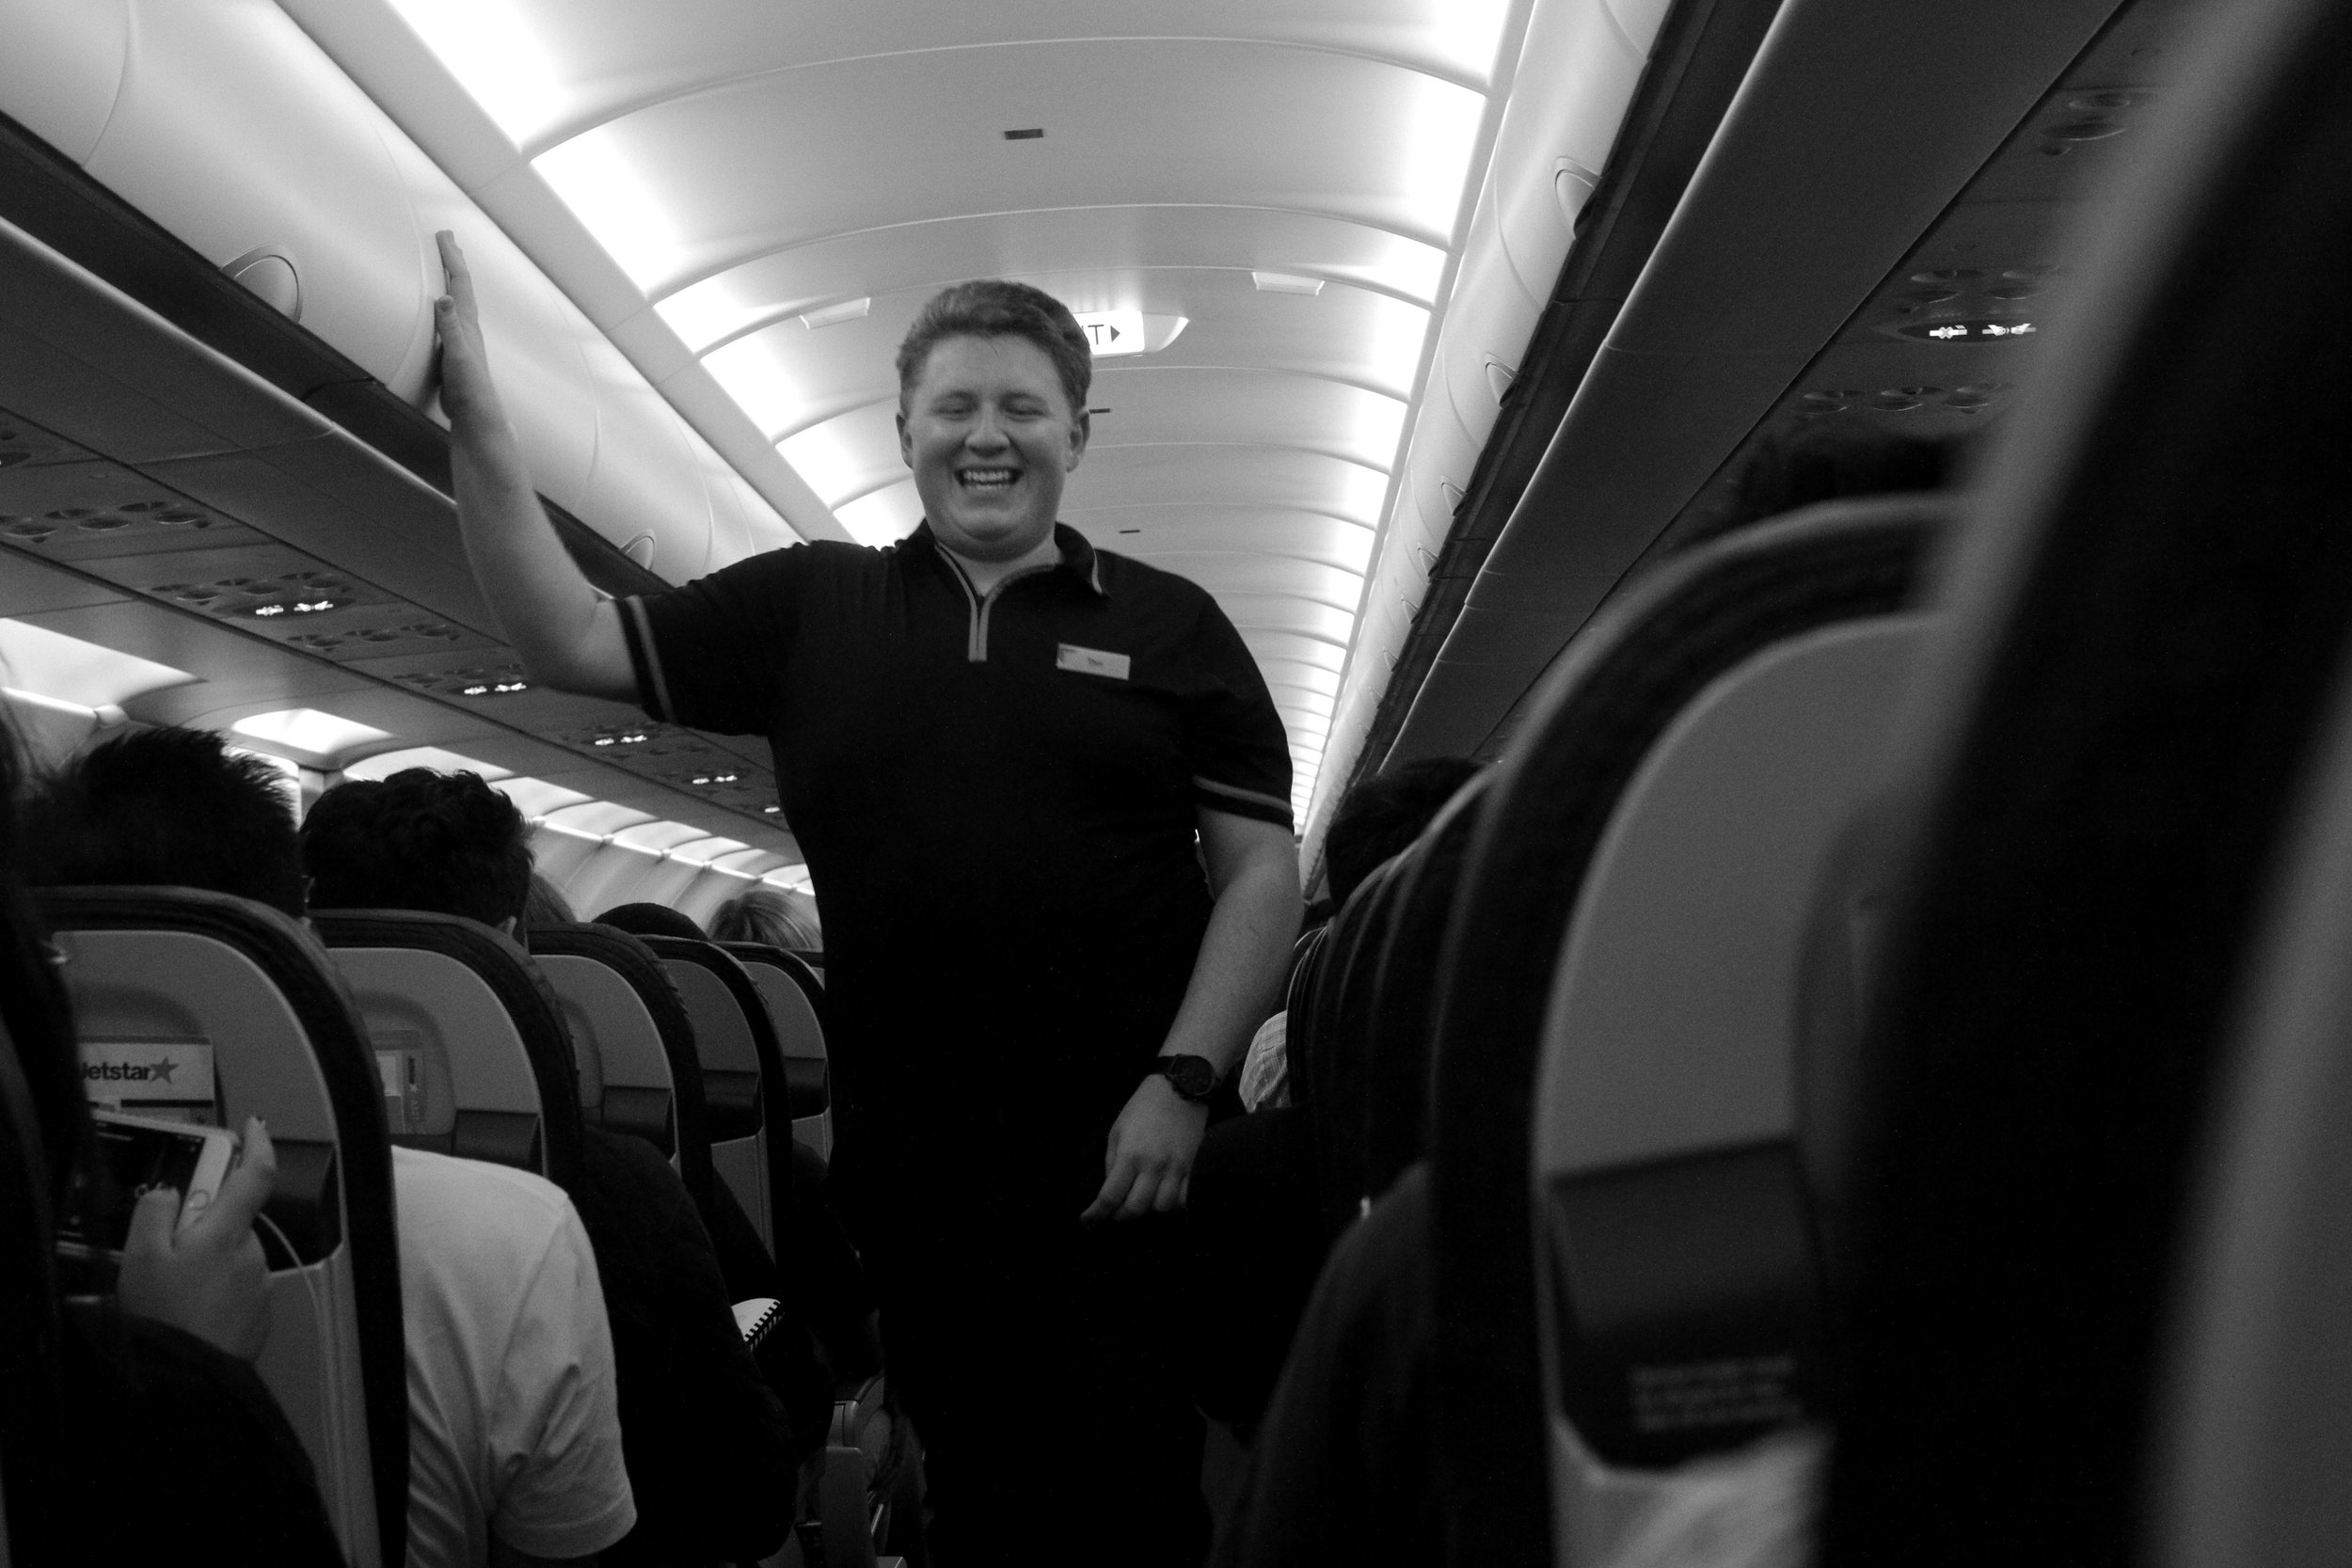 15. Our super happy flight attendant Thor ushering us home safely. On rock tour it is handy to be around people with happiness inside them.